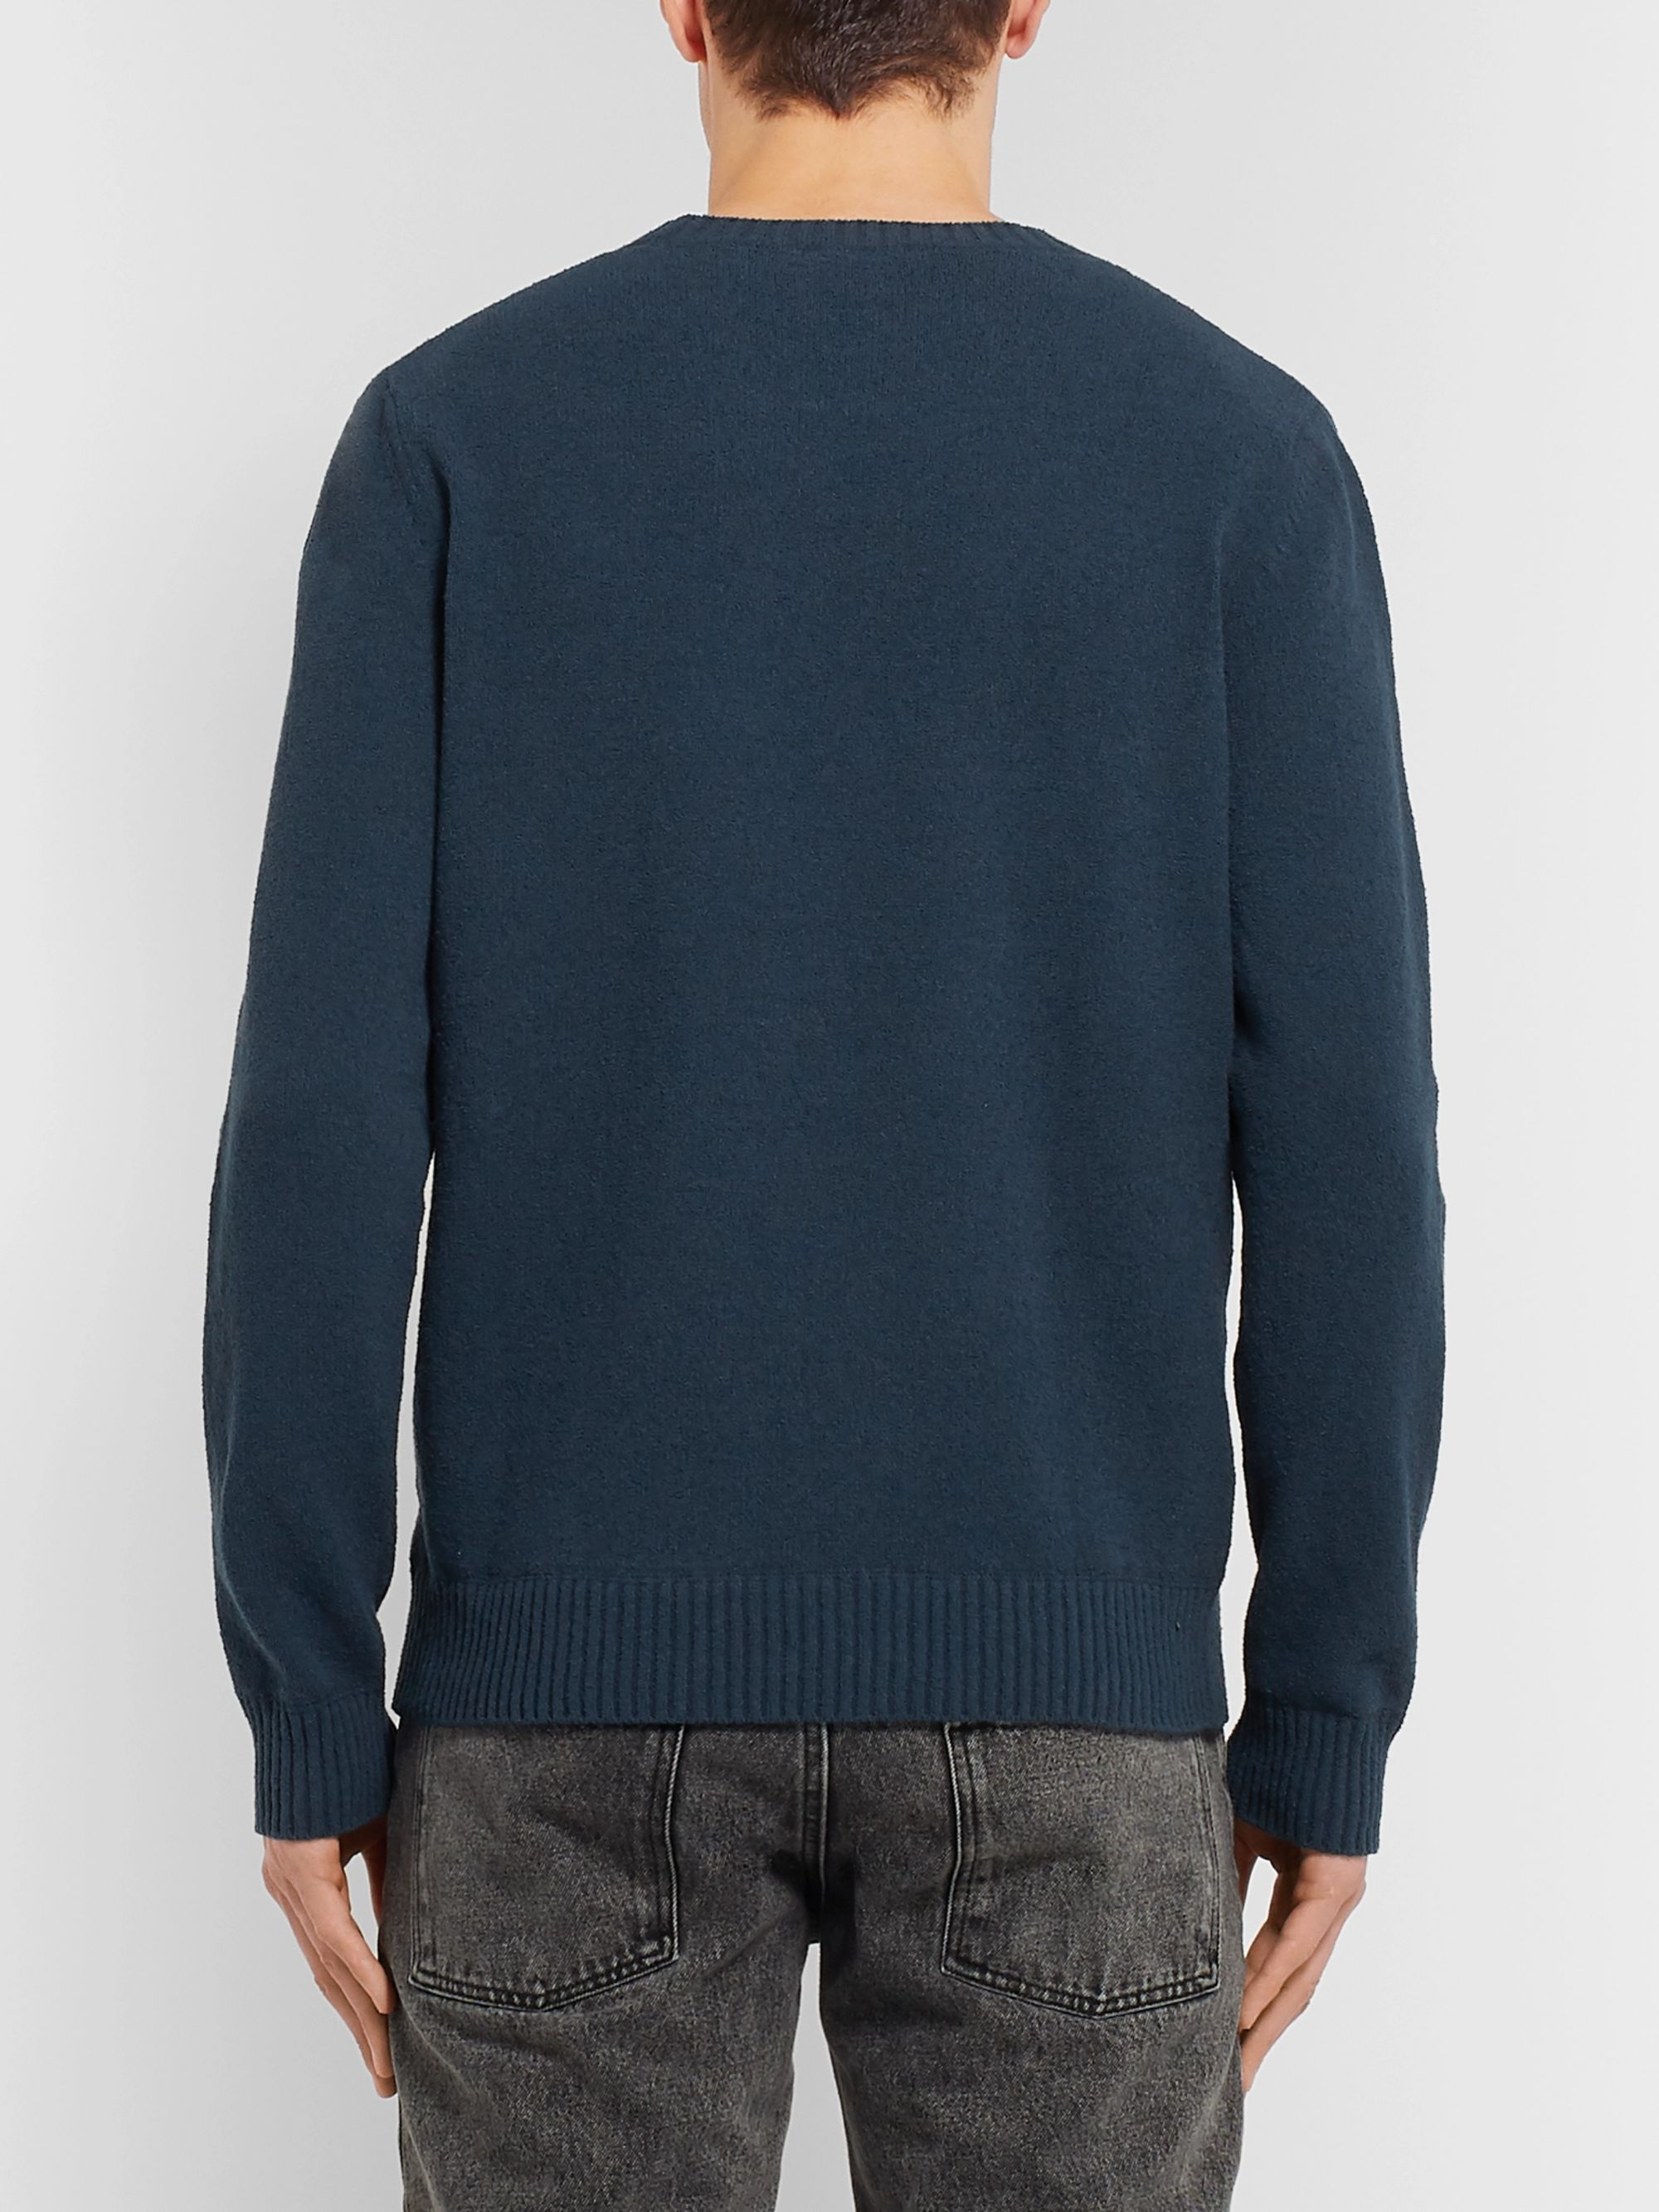 A.P.C. Micka Logo-Embroidered Textured Cotton-Blend Sweater